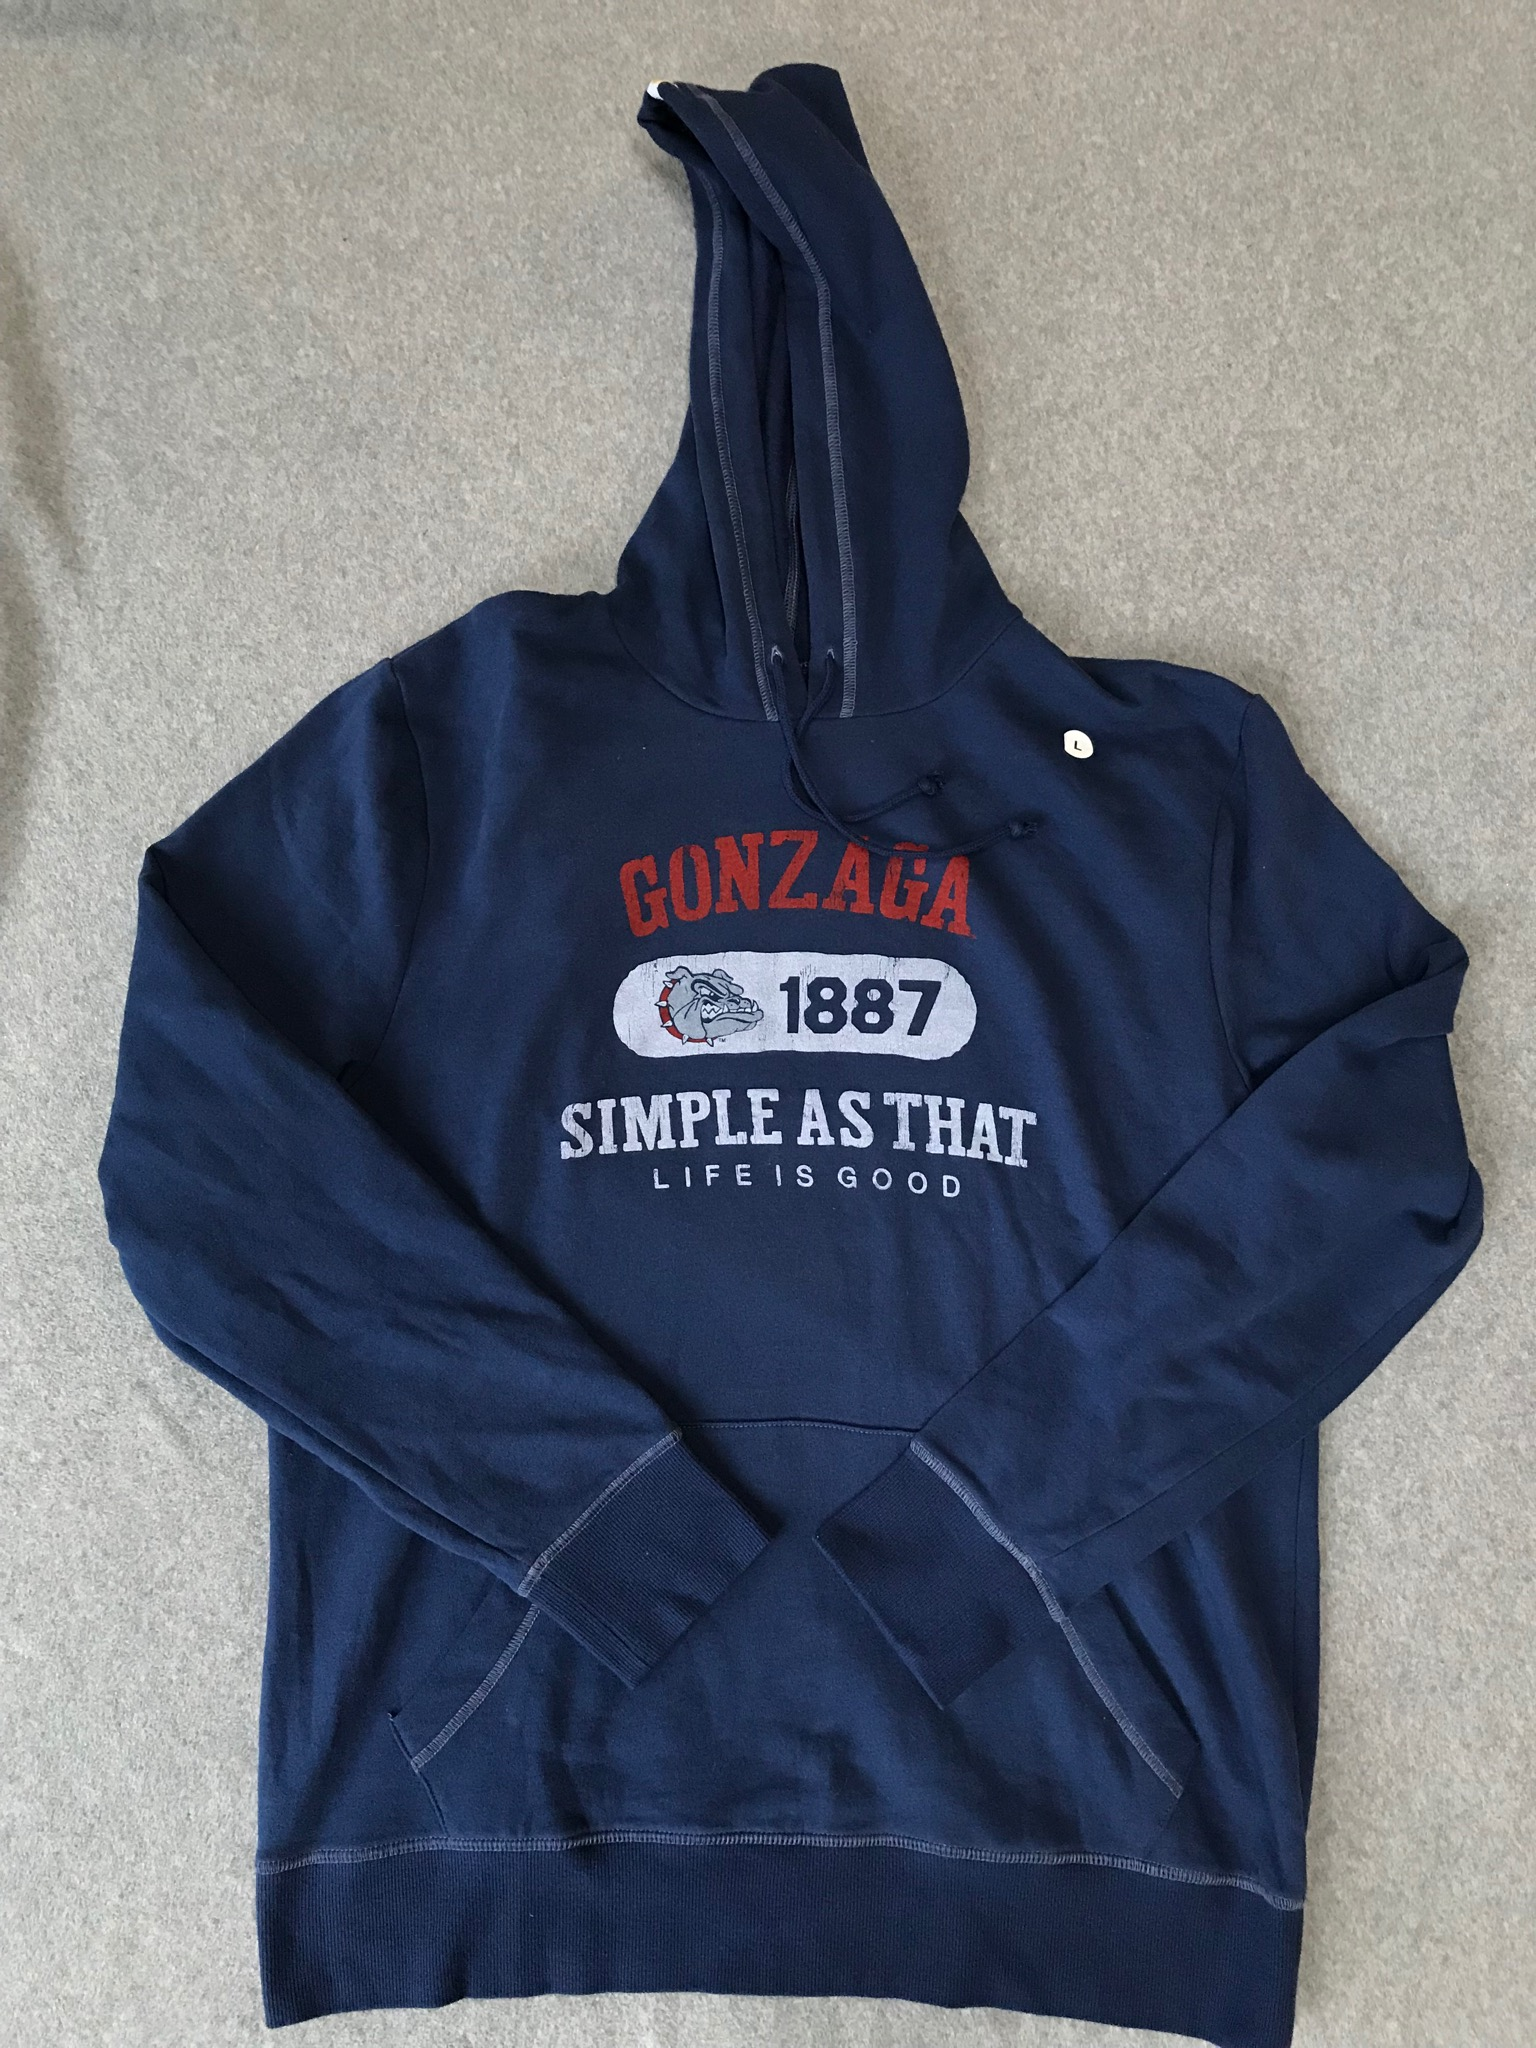 Gonzaga NWT Navy Hoody Screenprinted Size Large